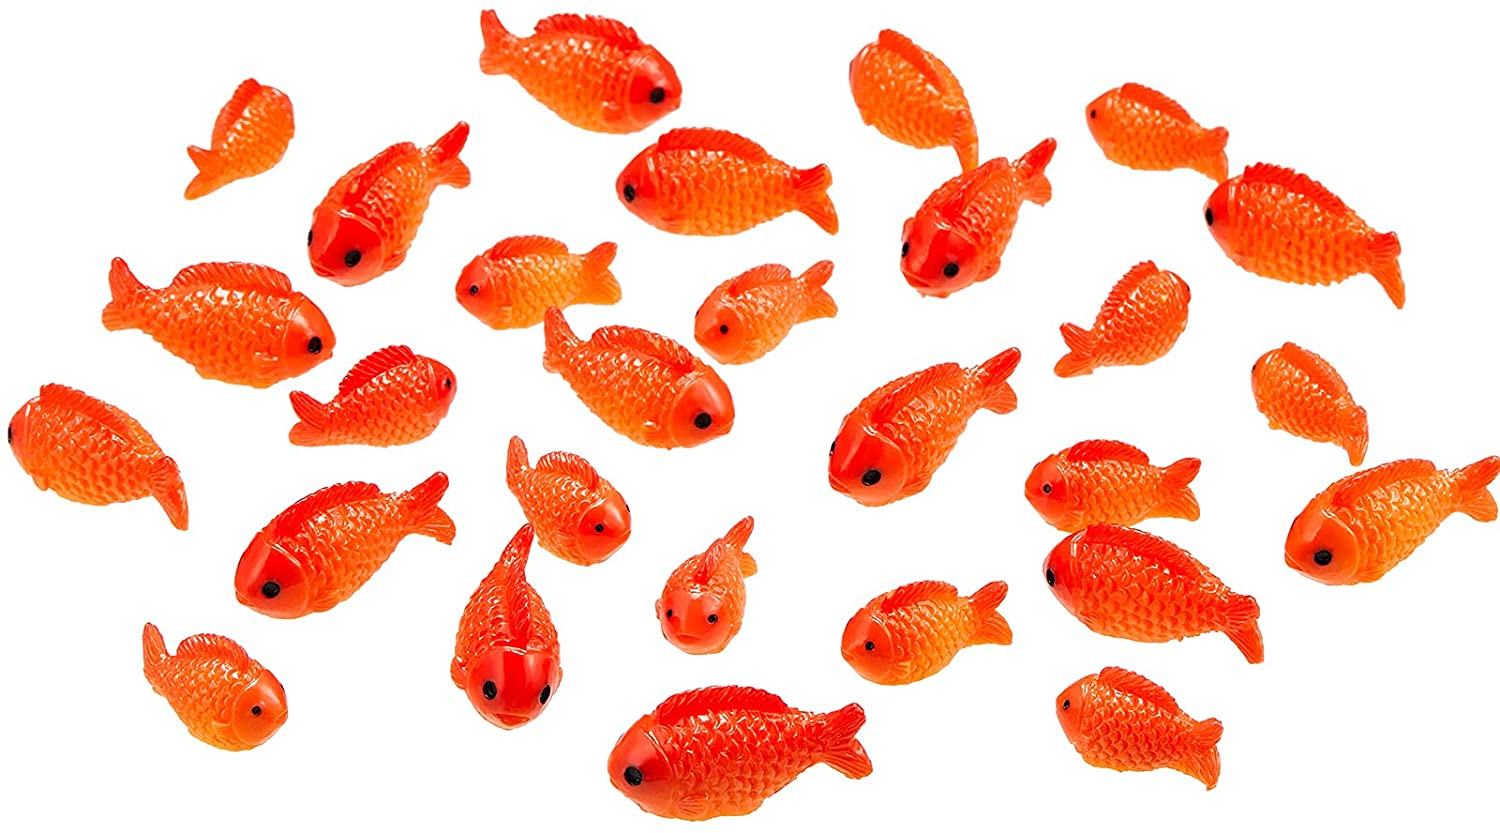 36 Pieces Small Resin Red Goldfish Mini Goldfish Figurines Resin Red Fish Toy Set Sea Animals Toys Fairy Garden Accessories Miniature for Home Decor DIY Crafts Miniature Garden Accessories